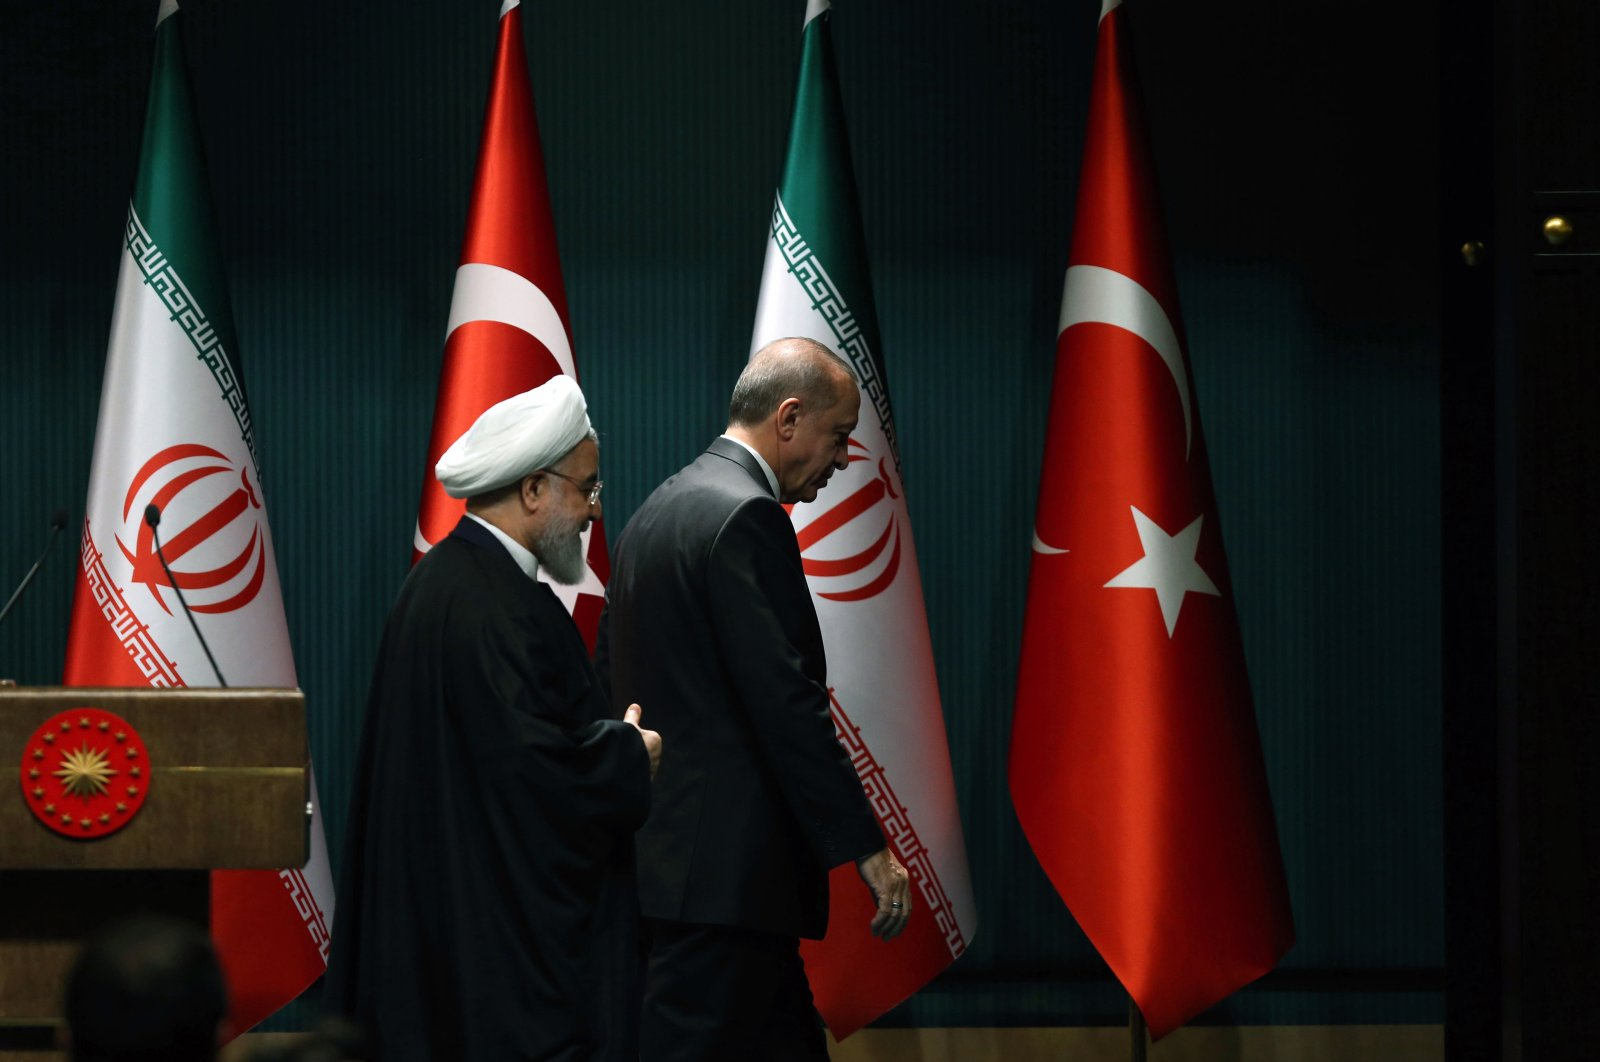 President Recep Tayyip Erdoğan and Iranian President Hassan Rouhan leave after a joint press conference in the capital Ankara, Turkey, Dec. 20, 2018. (Sabah Photo)